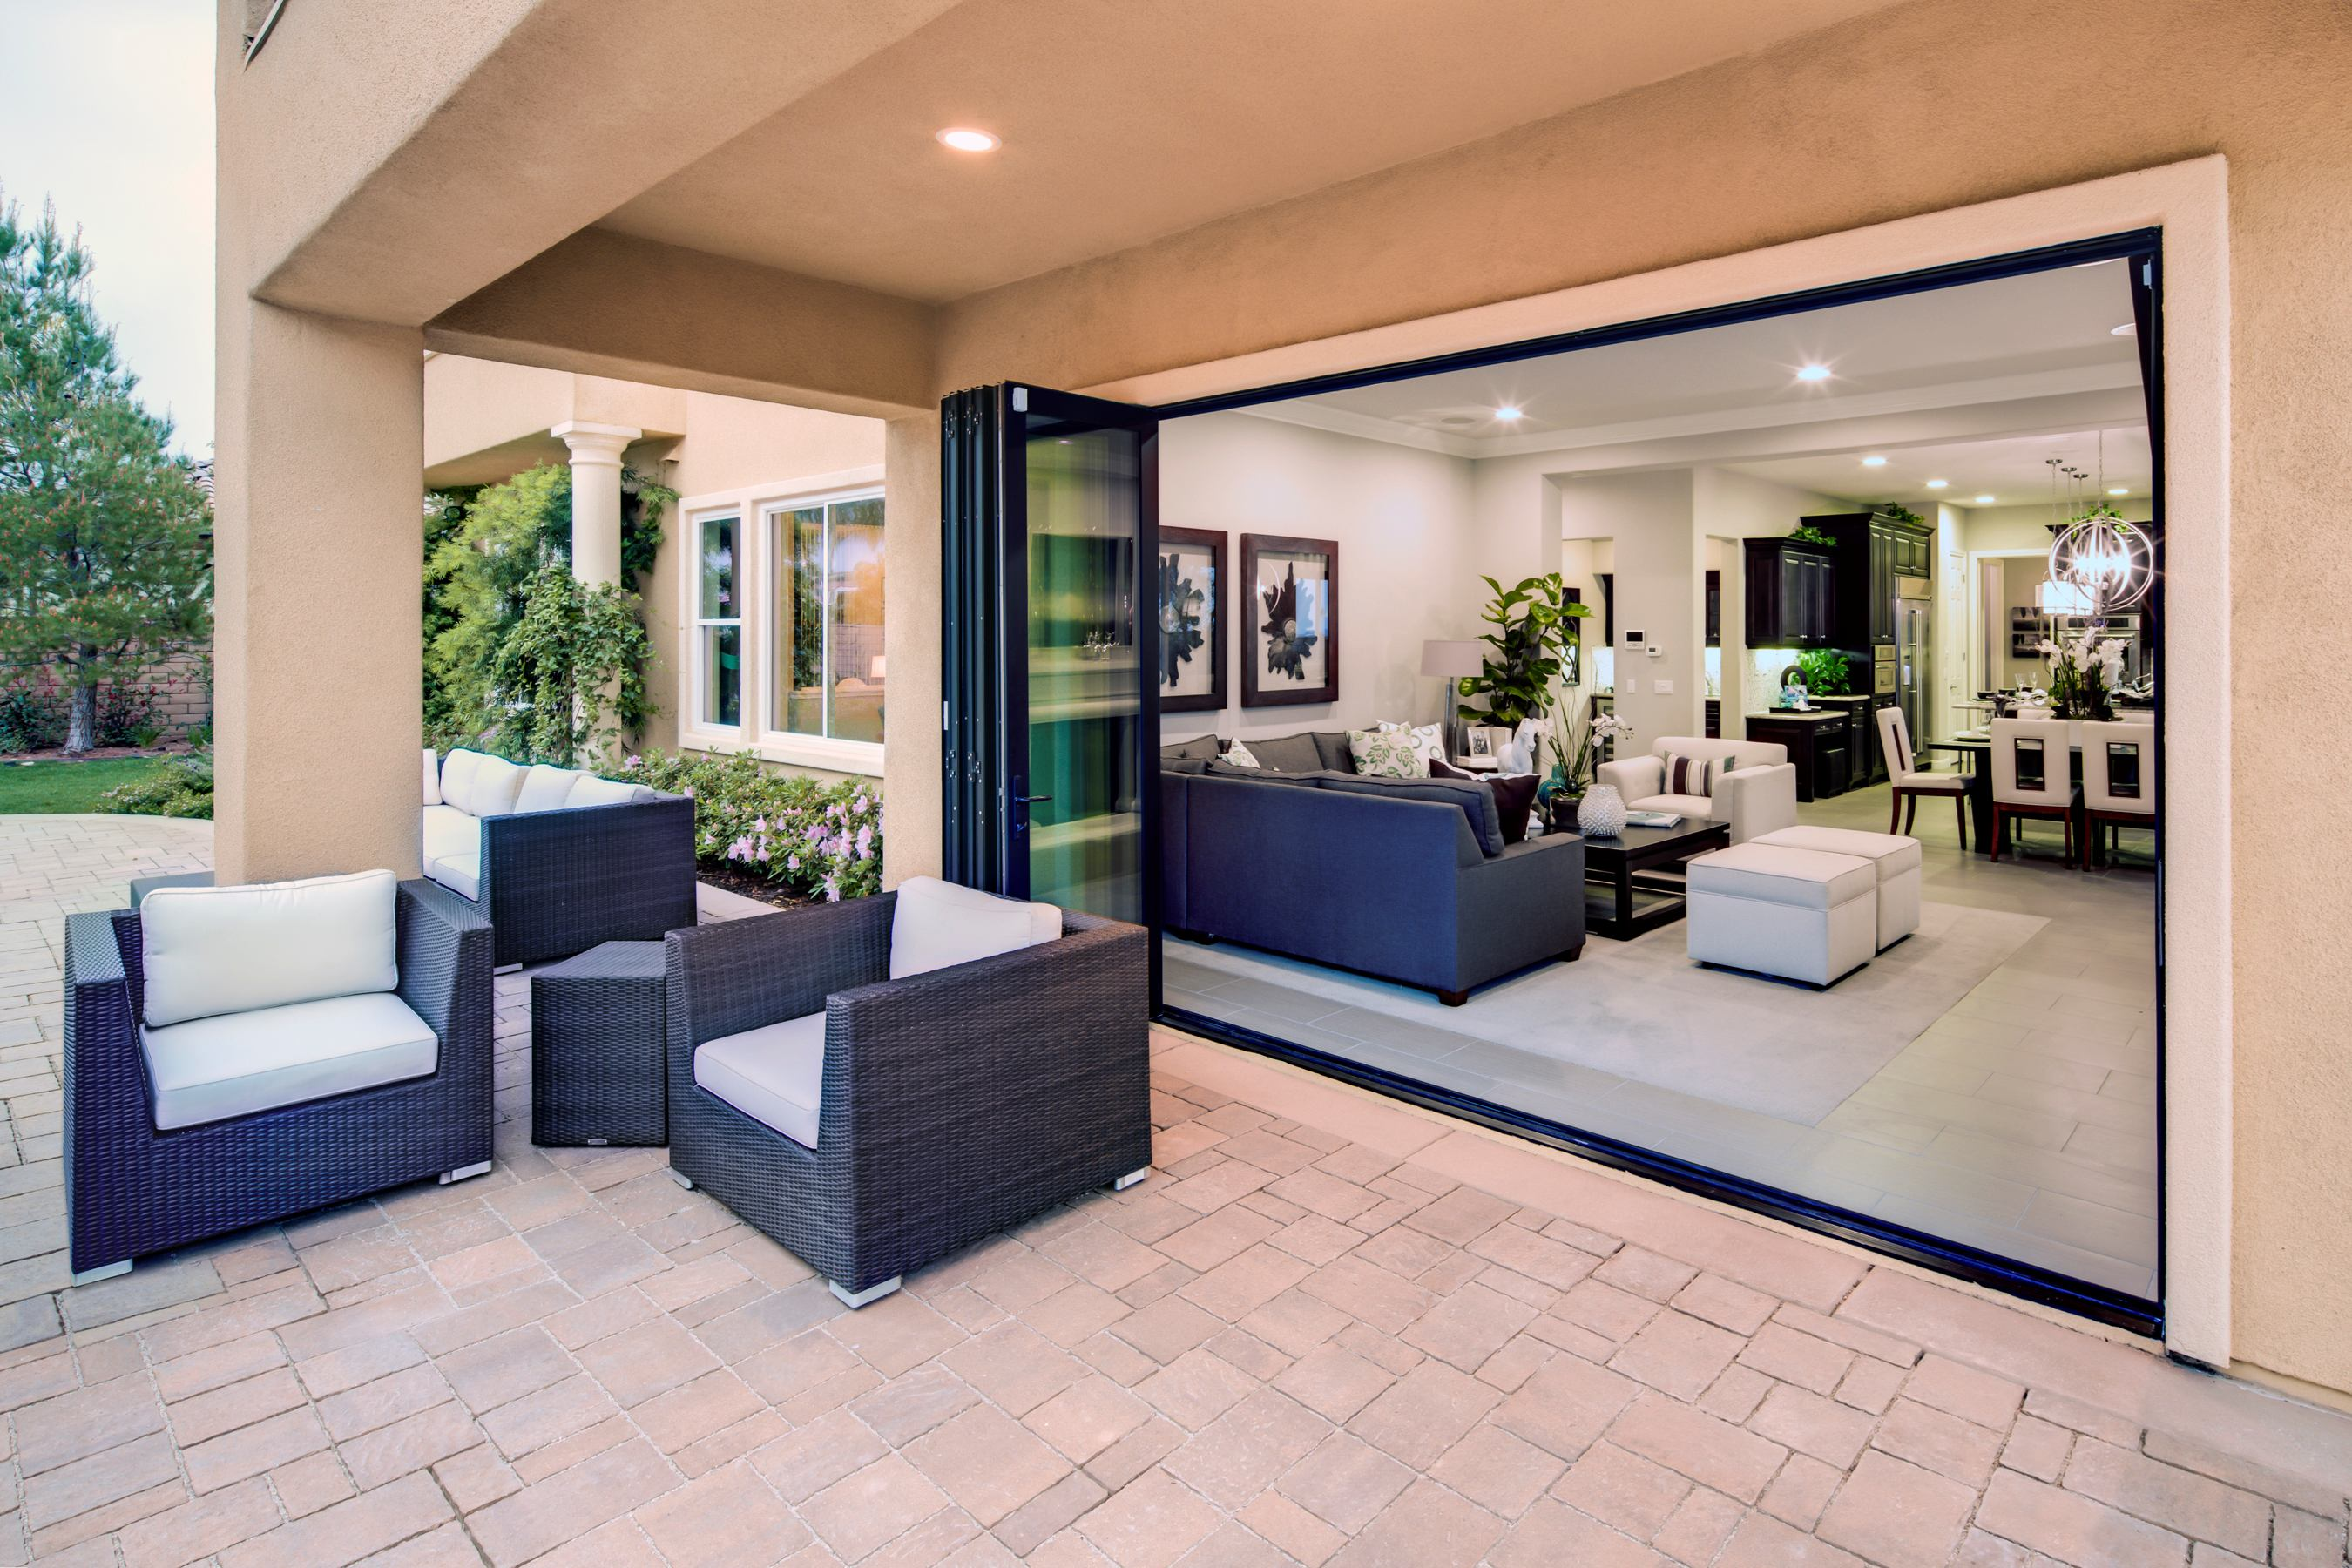 Wide Span Doors Expand Your View | Builder Magazine | Doors, Outdoor Rooms,  Exteriors, Kolbe, Kommerling USA, LaCantina Doors, NanaWall, Solar  Innovations, ...